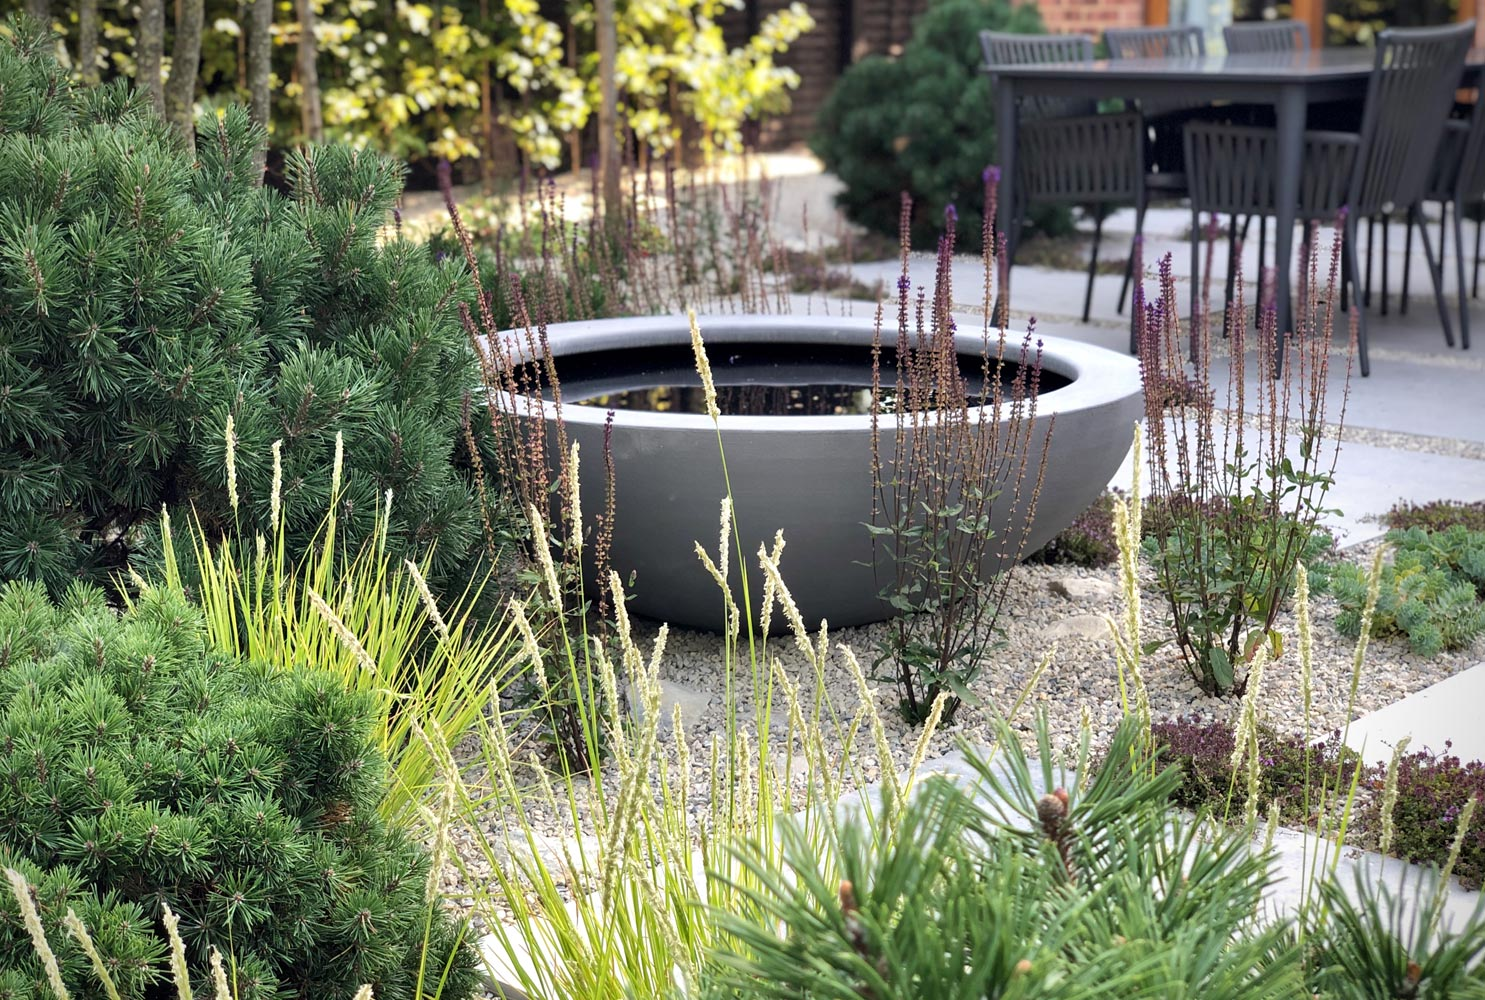 Colm Joseph Gardens bury st edmunds suffolk water feature dining terrace naturalistic planting